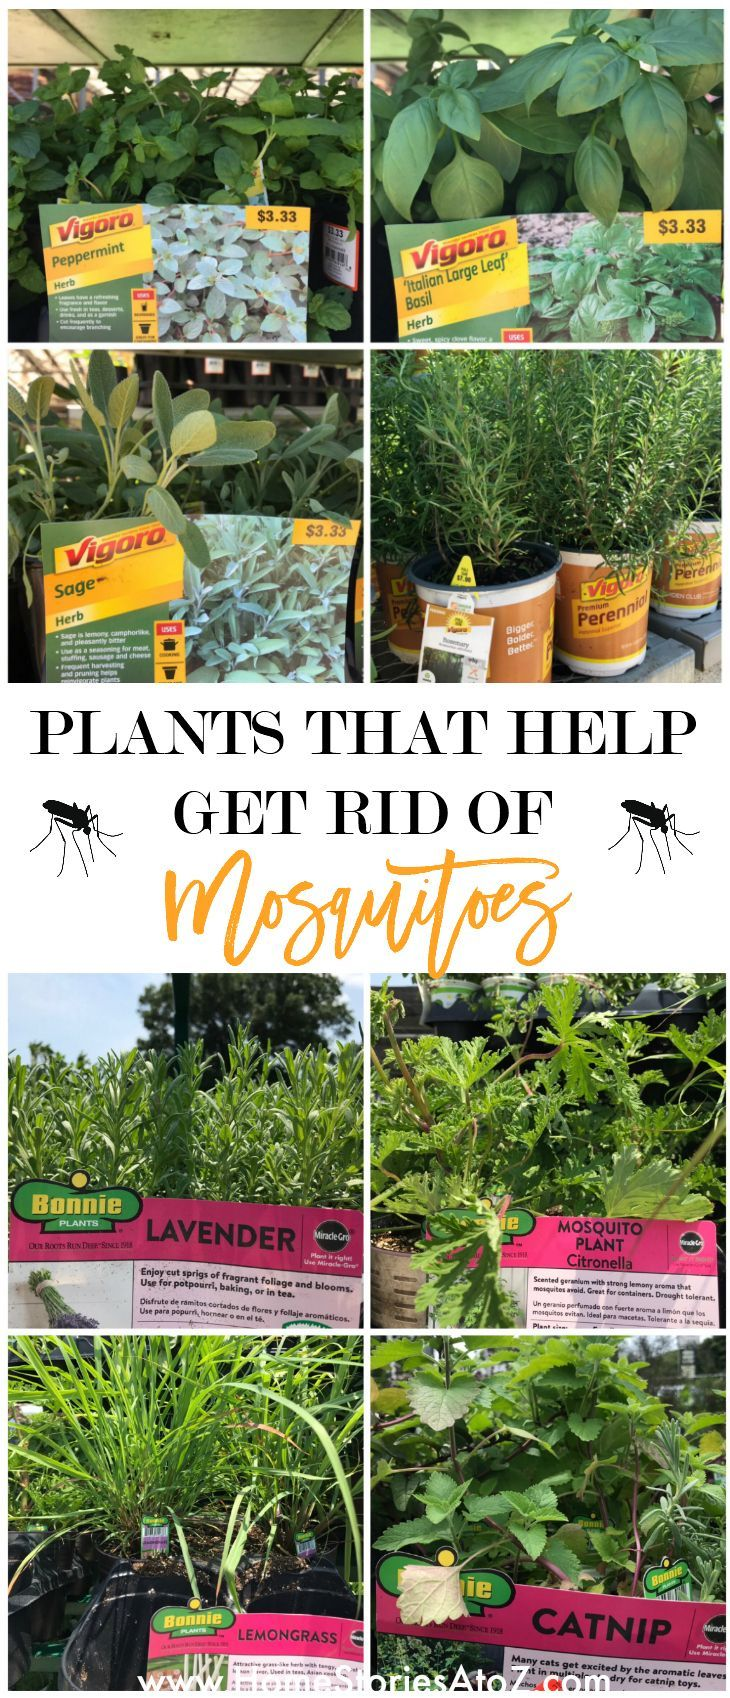 How To Rid Yard Of Mosquitoes